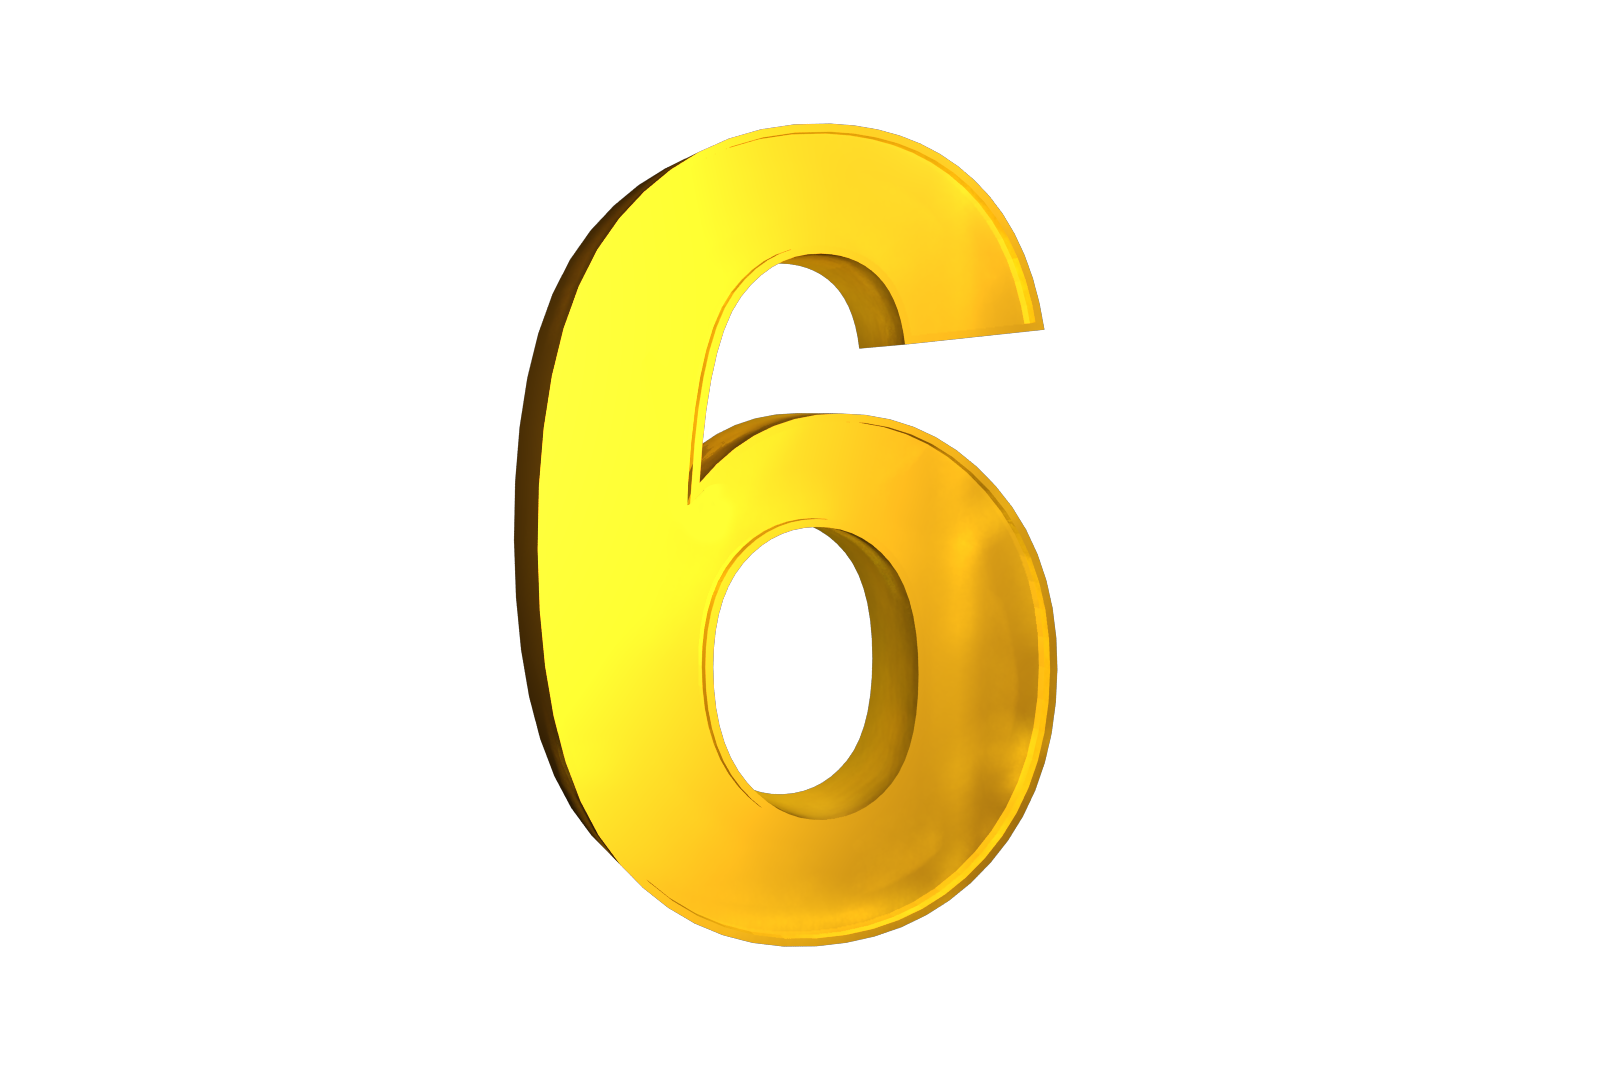 Number 2 clipart individual number. Png images free download